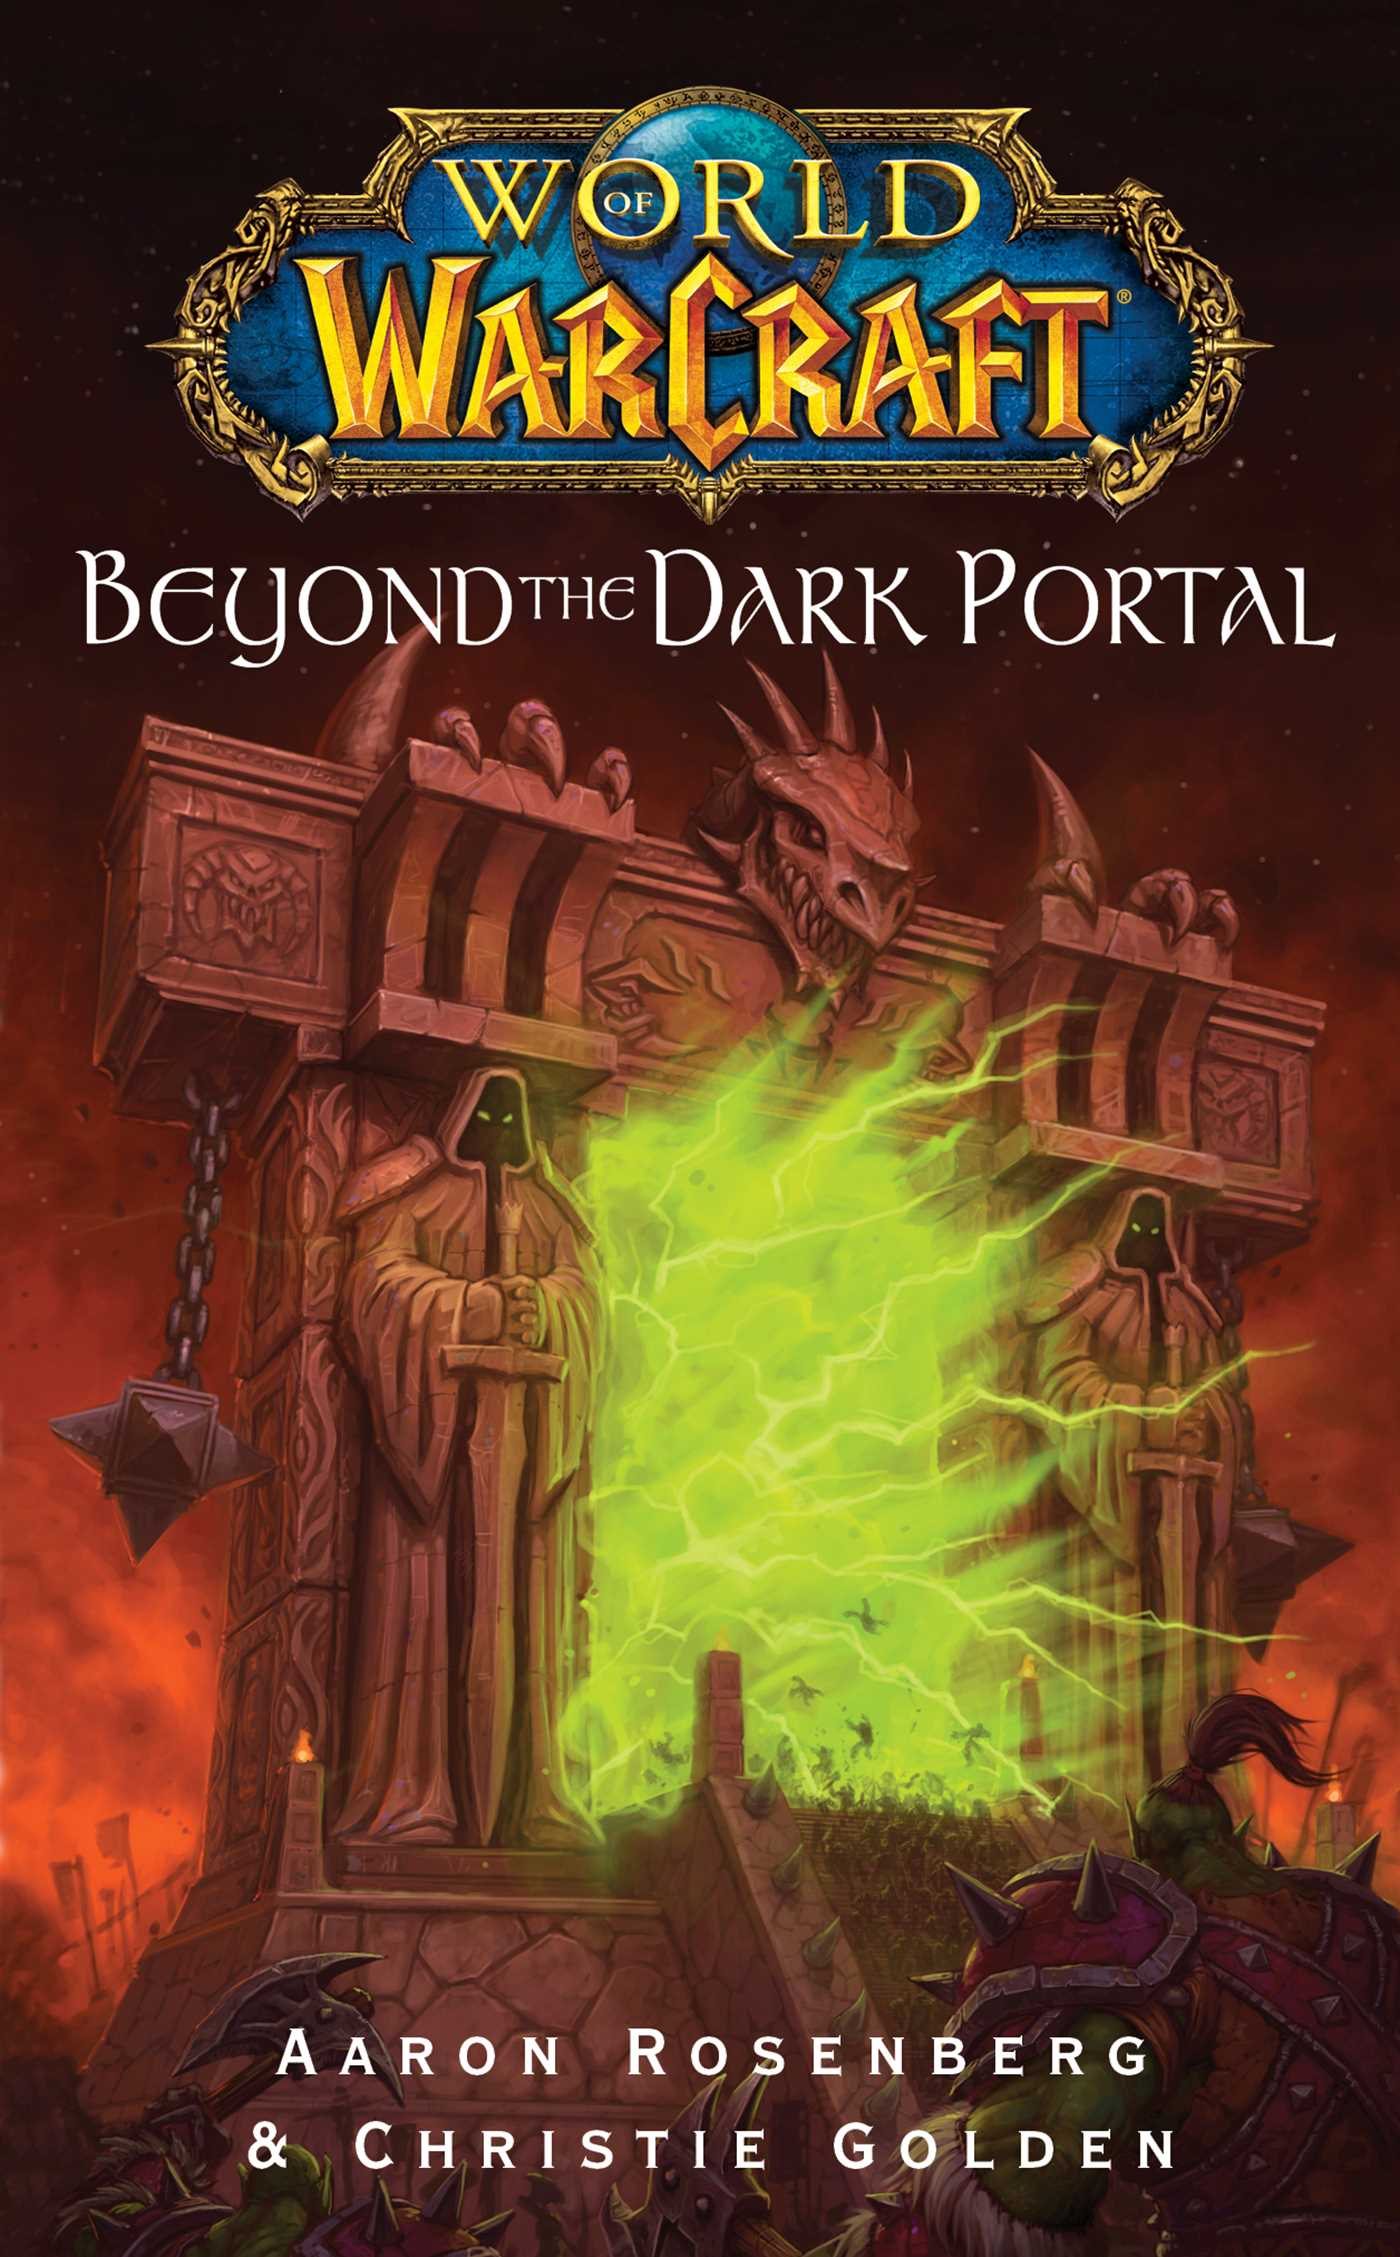 World-of-warcraft-beyond-the-dark-portal-9781416565390_hr